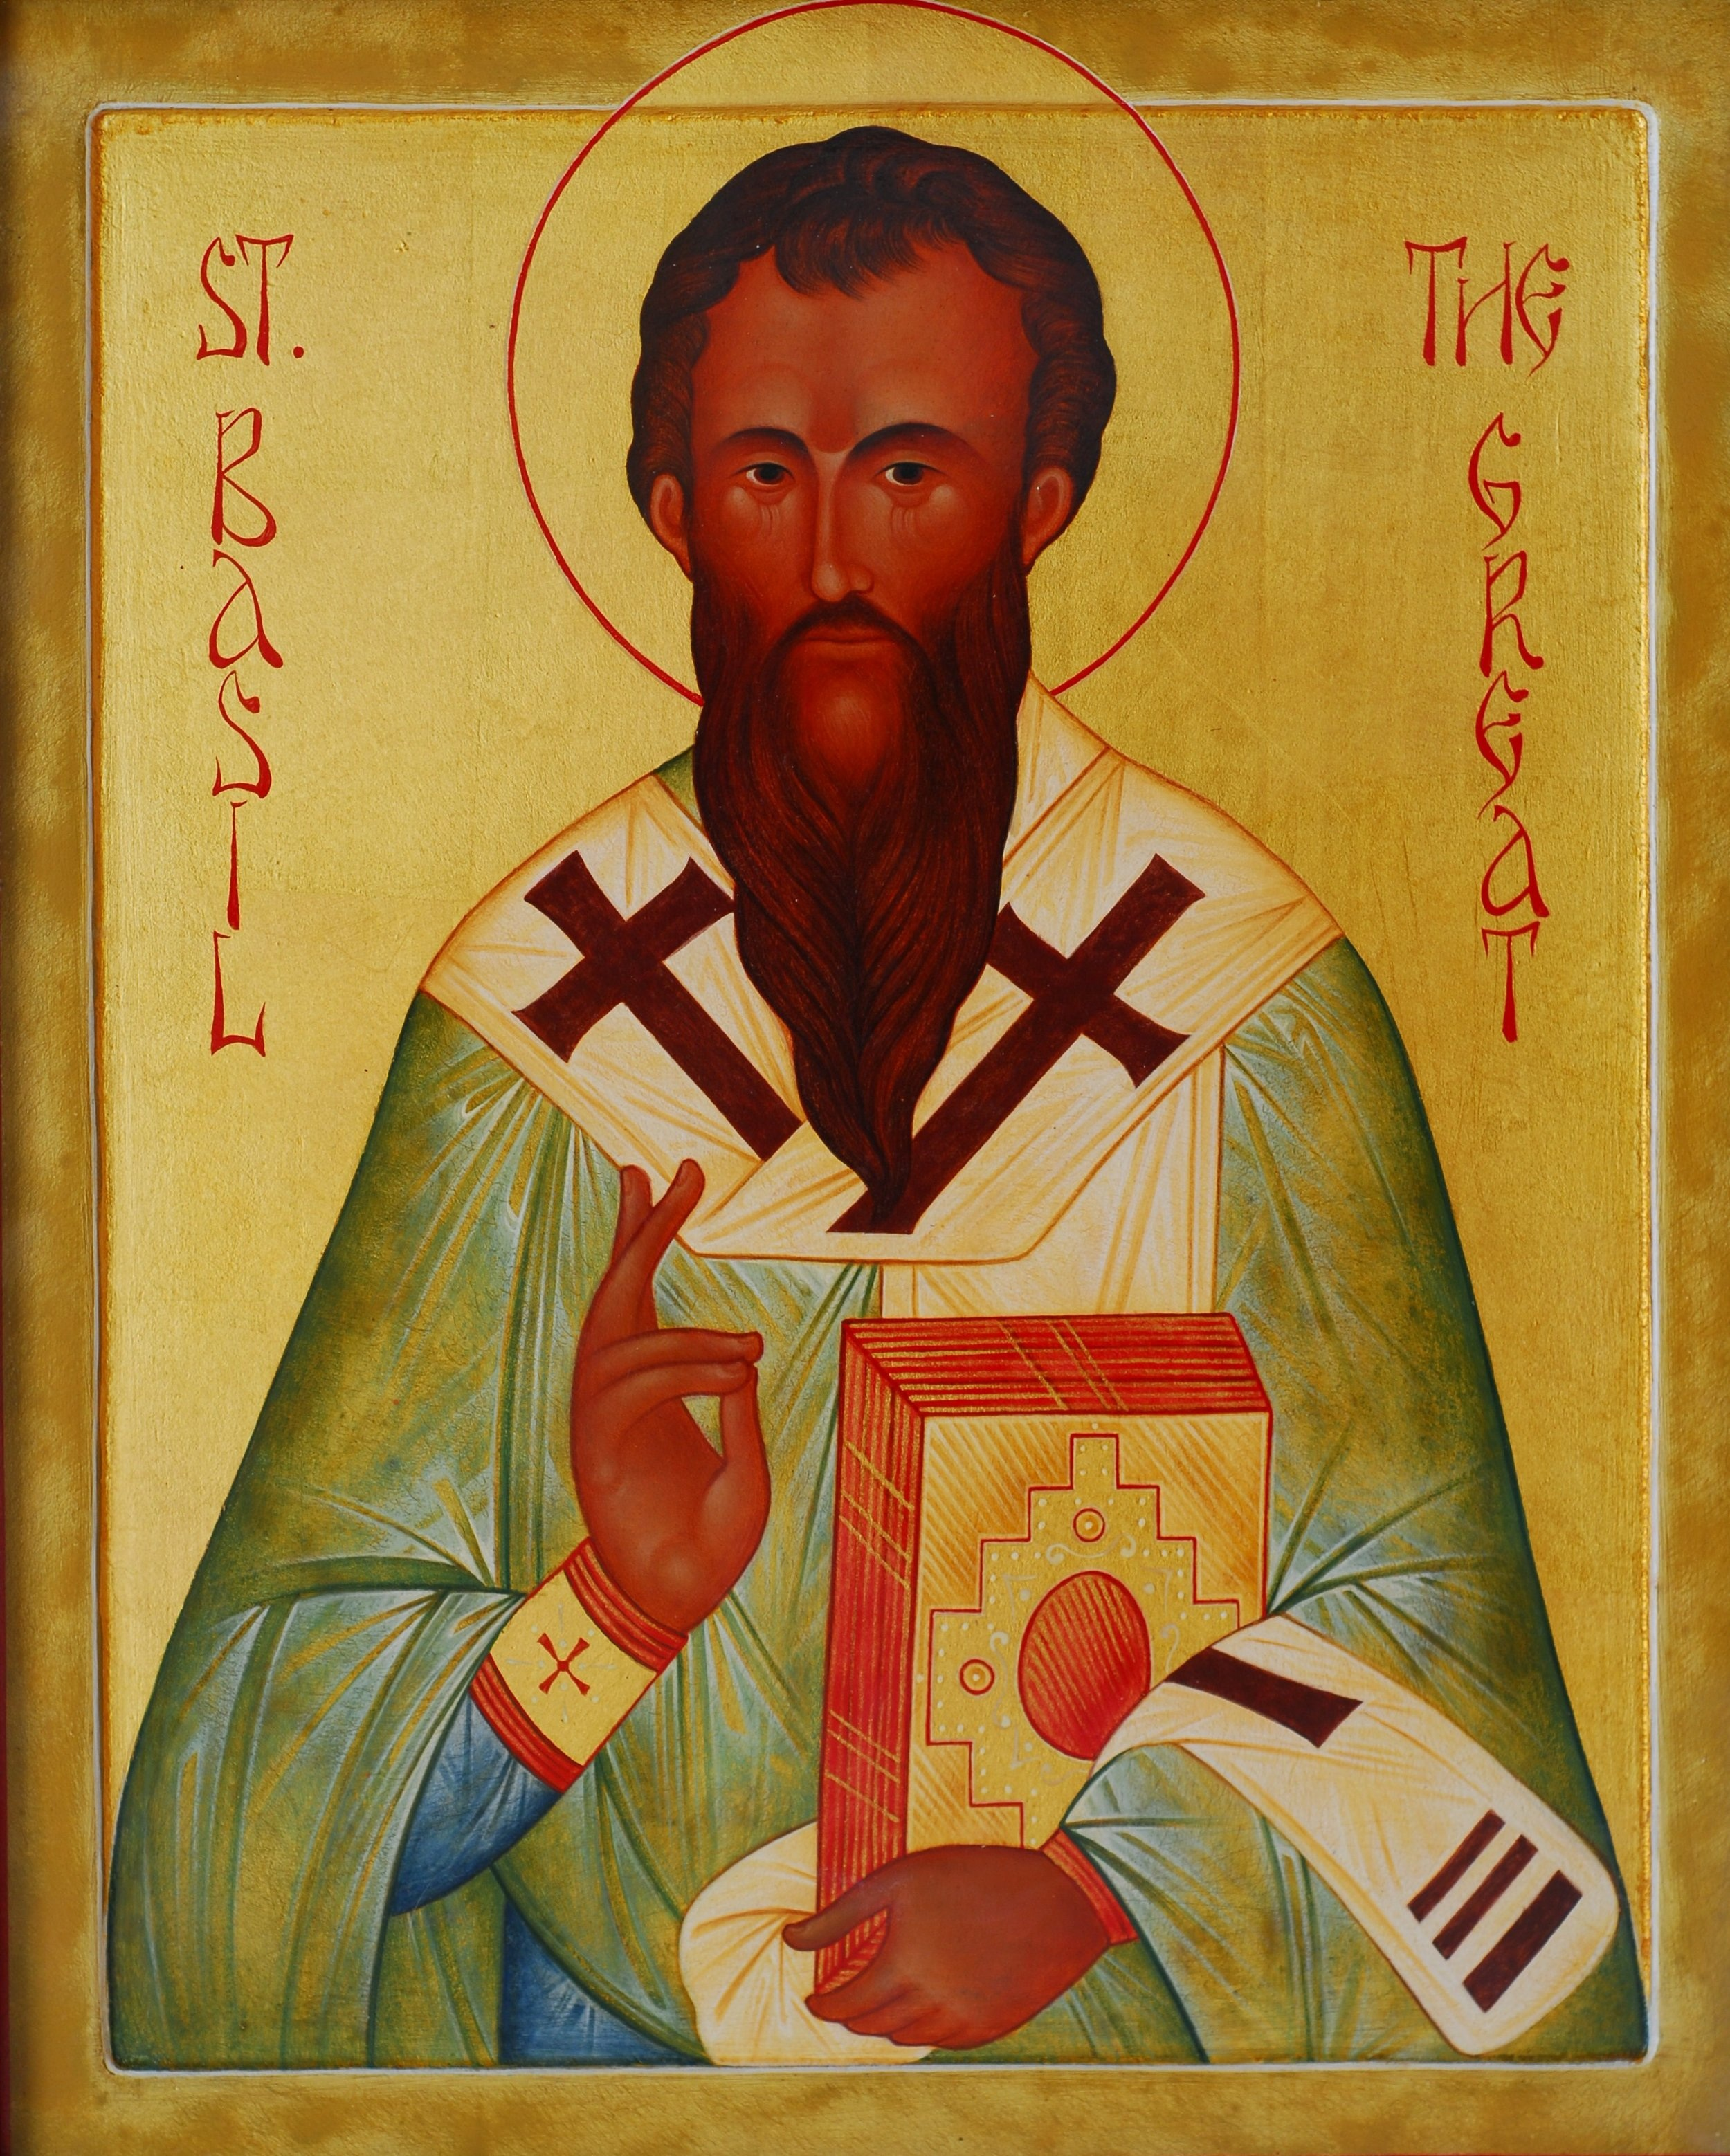 """This icon (Greek for """"image"""") was hand-painted for our community. St Basil is wearing episcopal vestments, holding the Gospel Book, and blessing with the  Christogram ."""